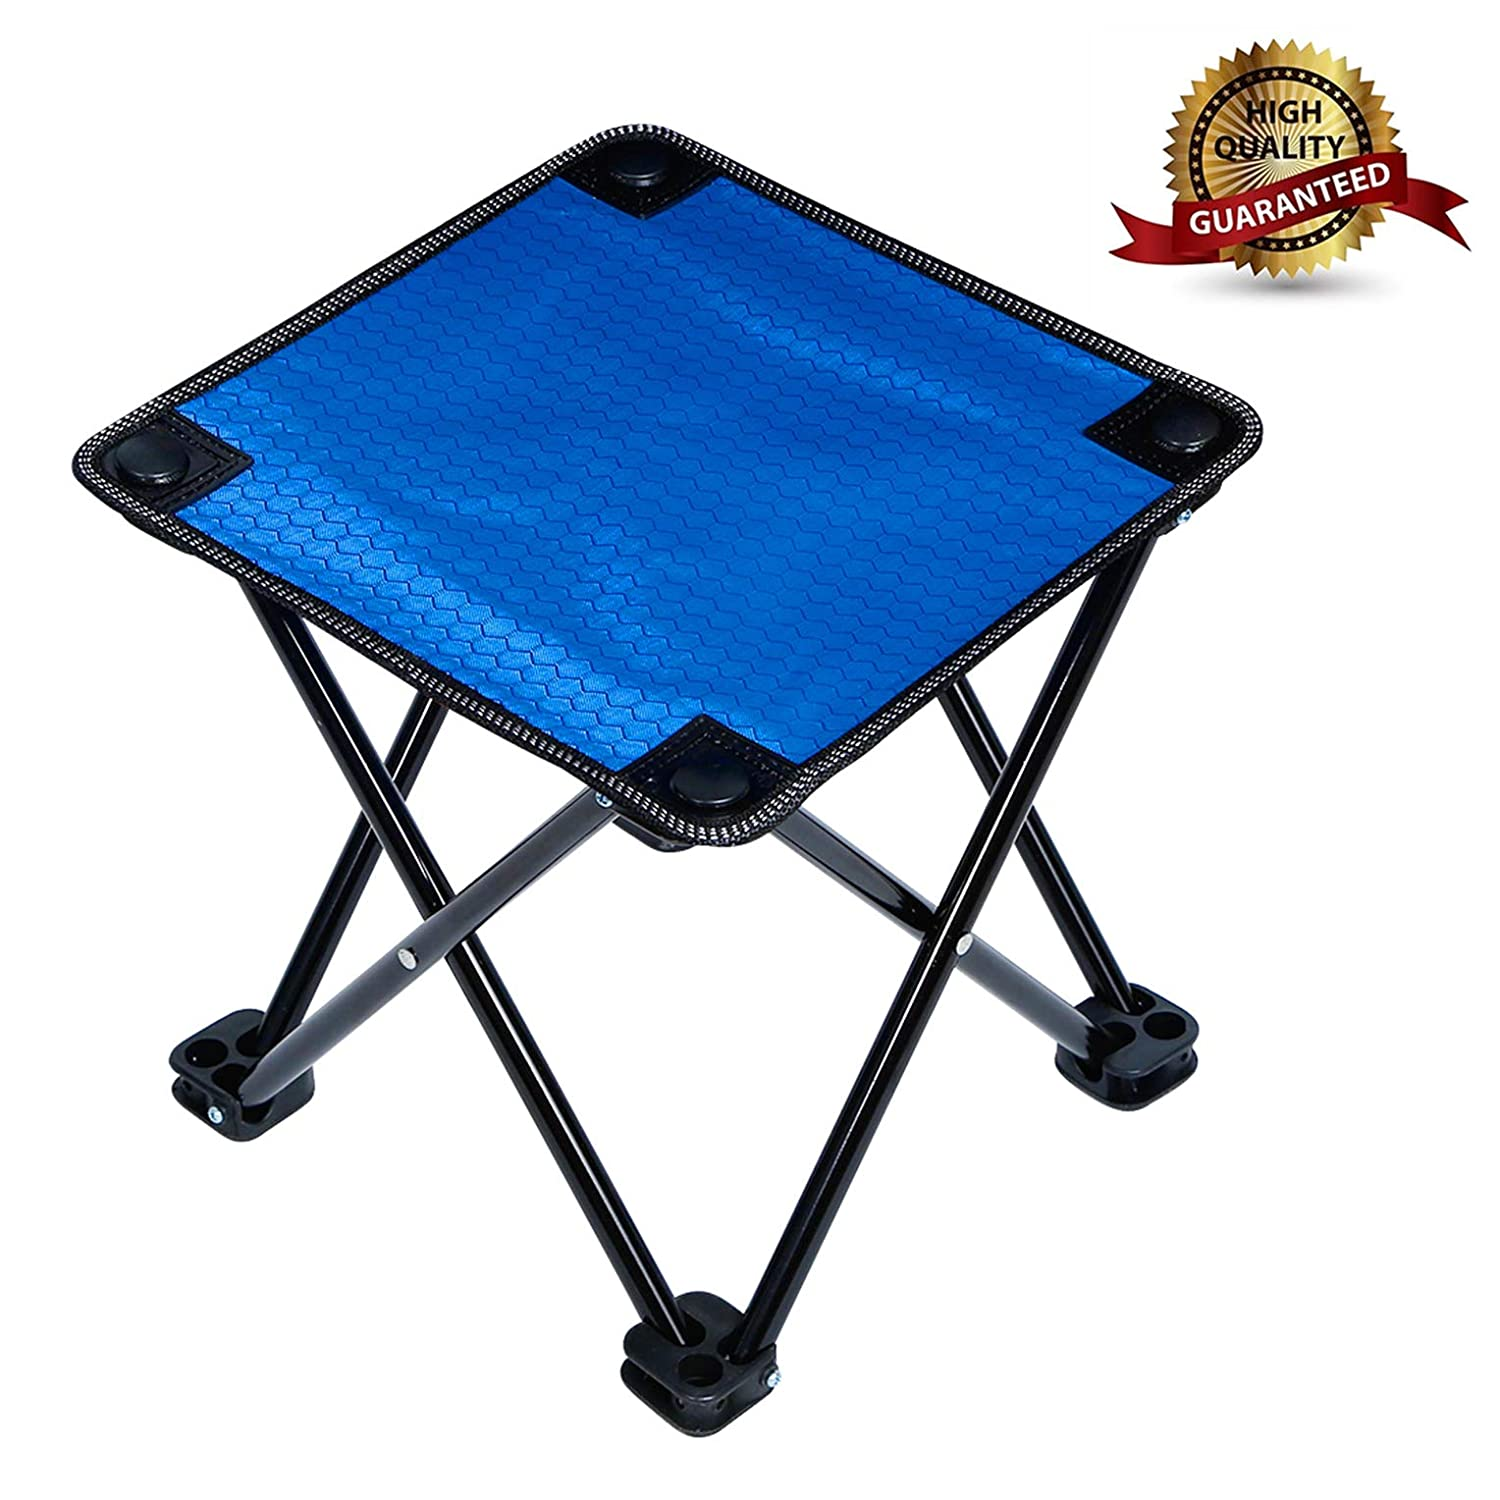 Remarkable Garne T Mini Portable Folding Stool Outdoor Folding Chair For Camping Fishing Travel Hiking Garden Beach Quickly Fold Chair Oxford Cloth With Carry Evergreenethics Interior Chair Design Evergreenethicsorg